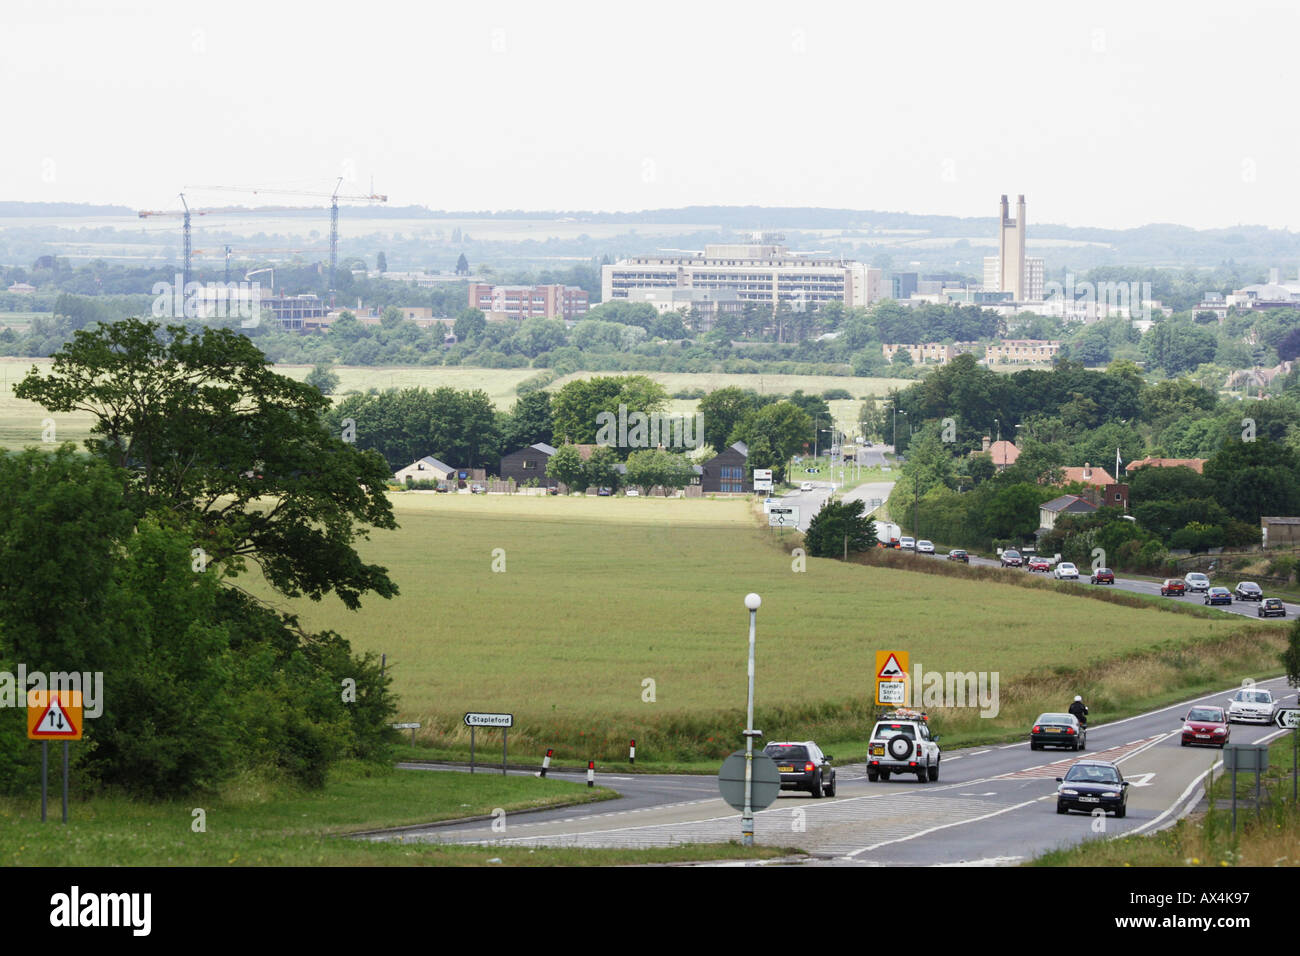 Page 2 - Gog Magog High Resolution Stock Photography and Images ...